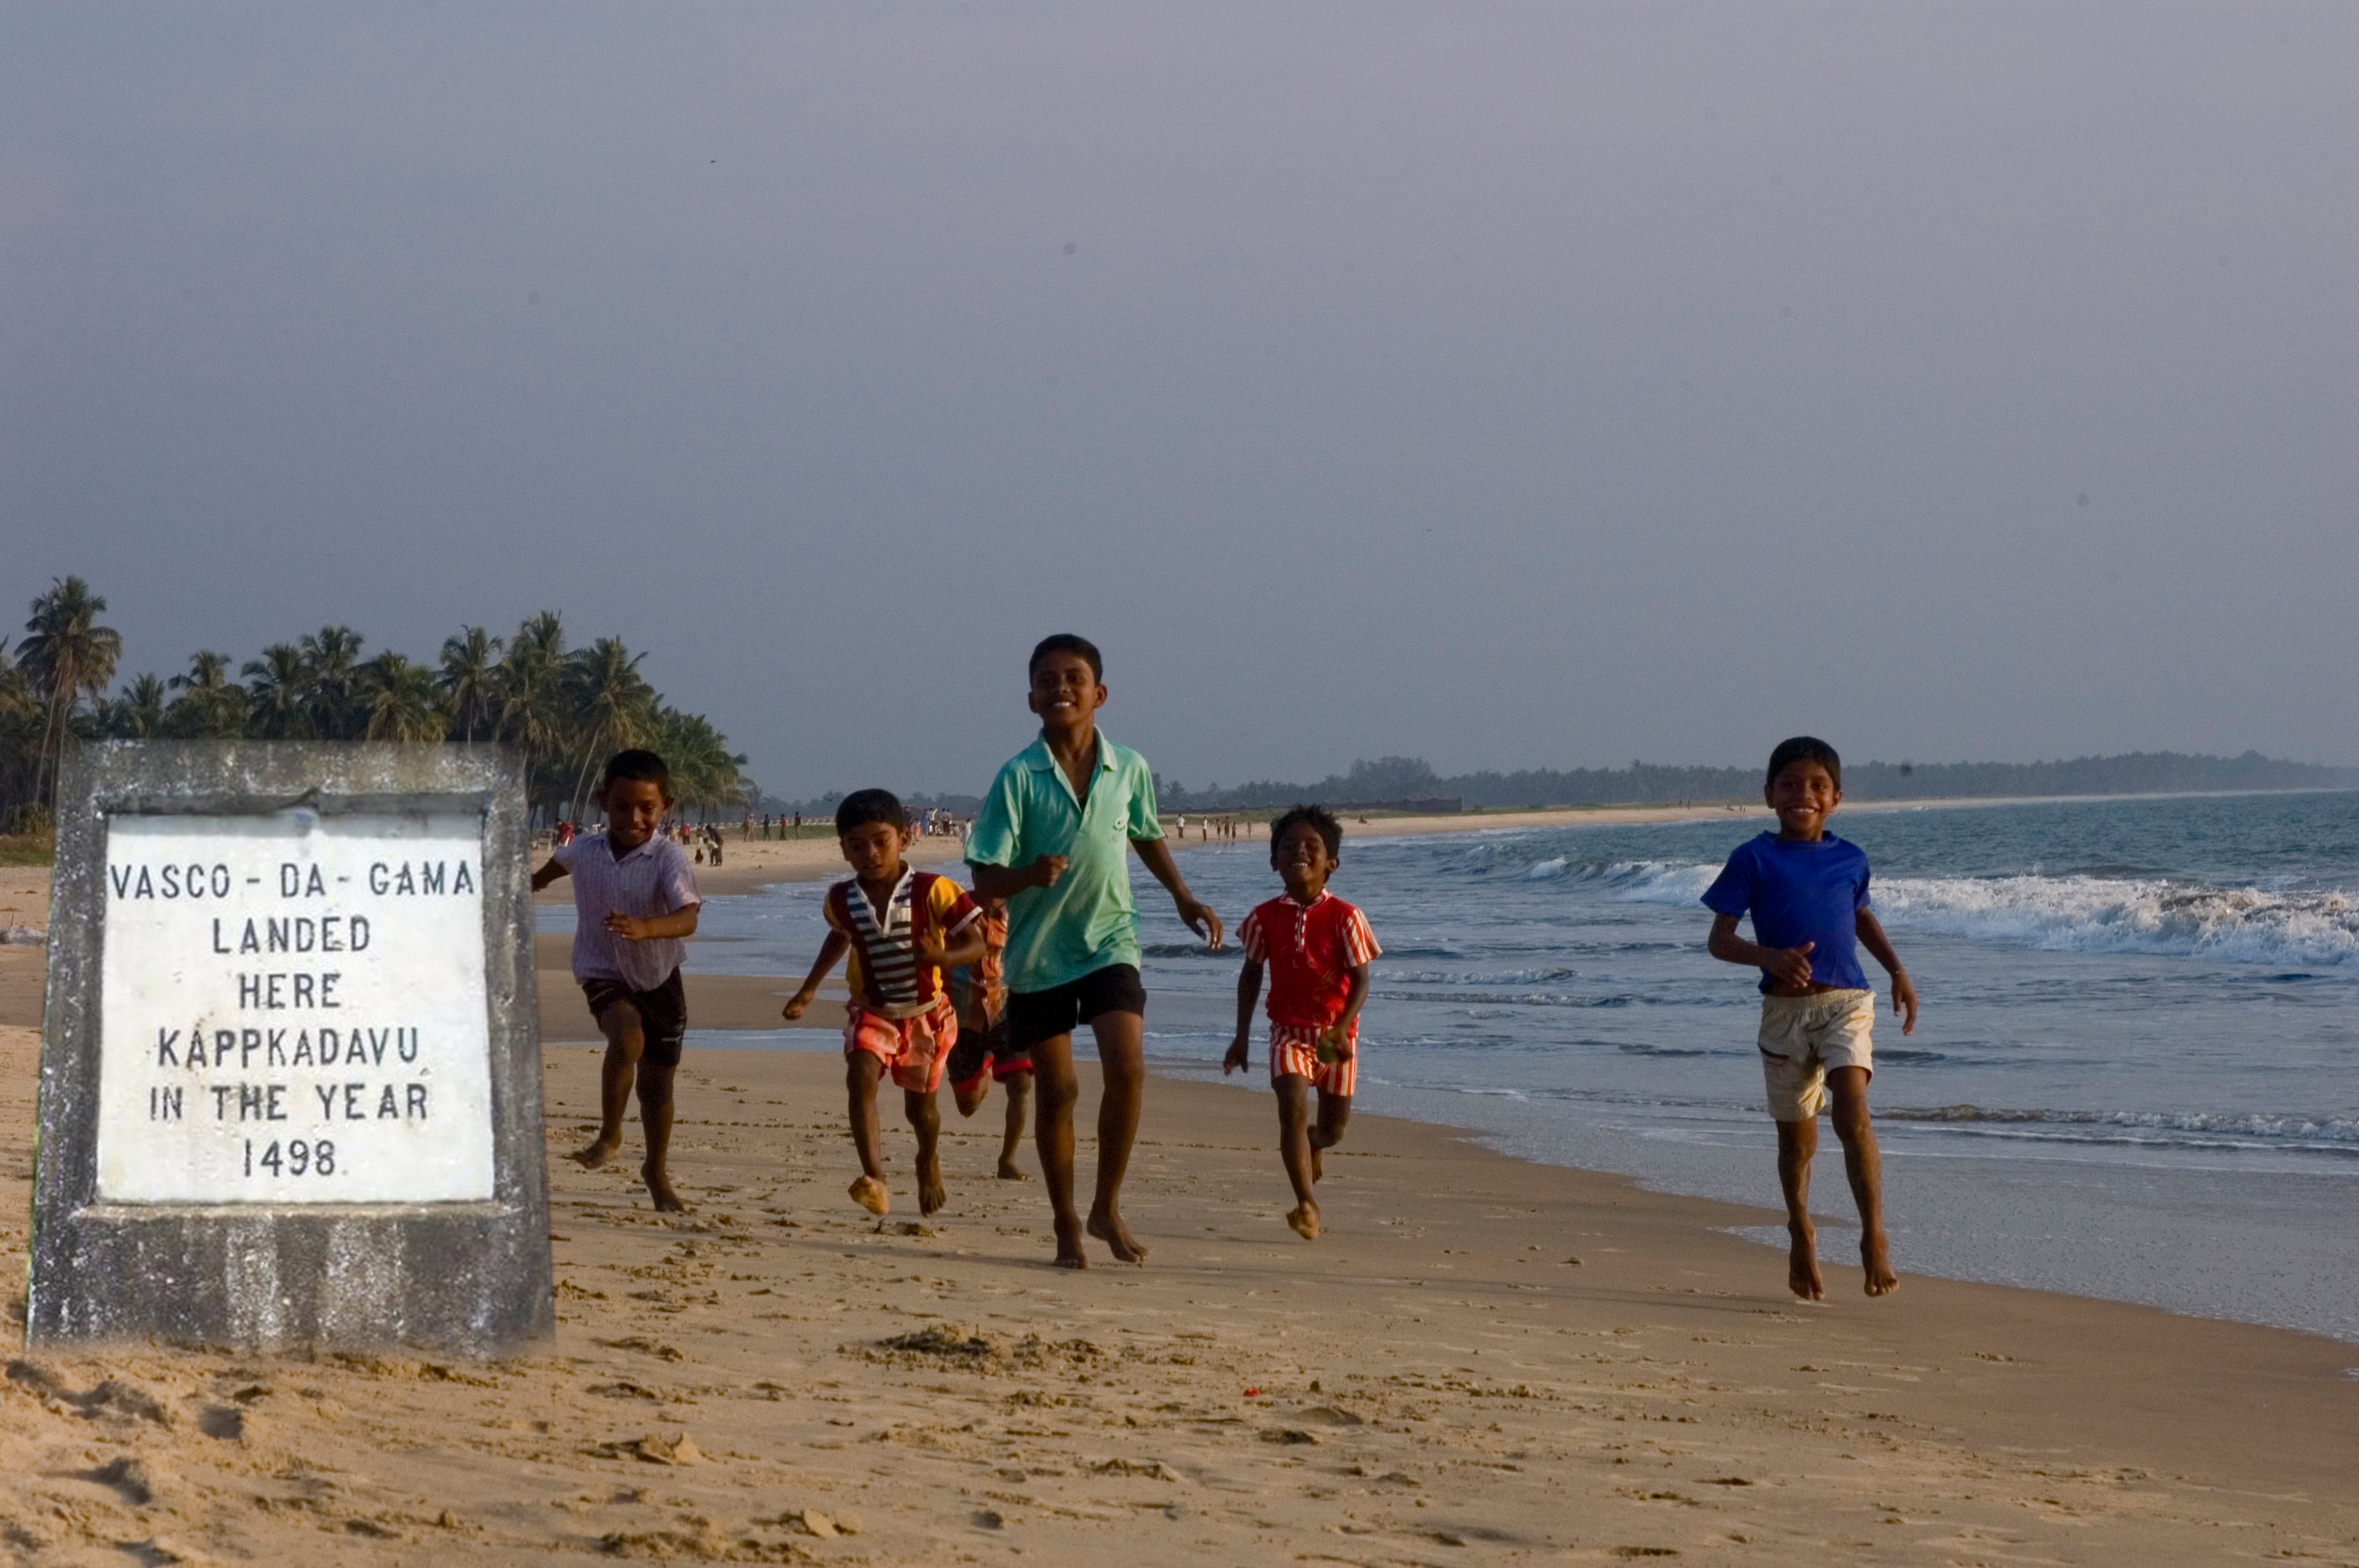 Best Beaches in Kerala - Kappad Beach